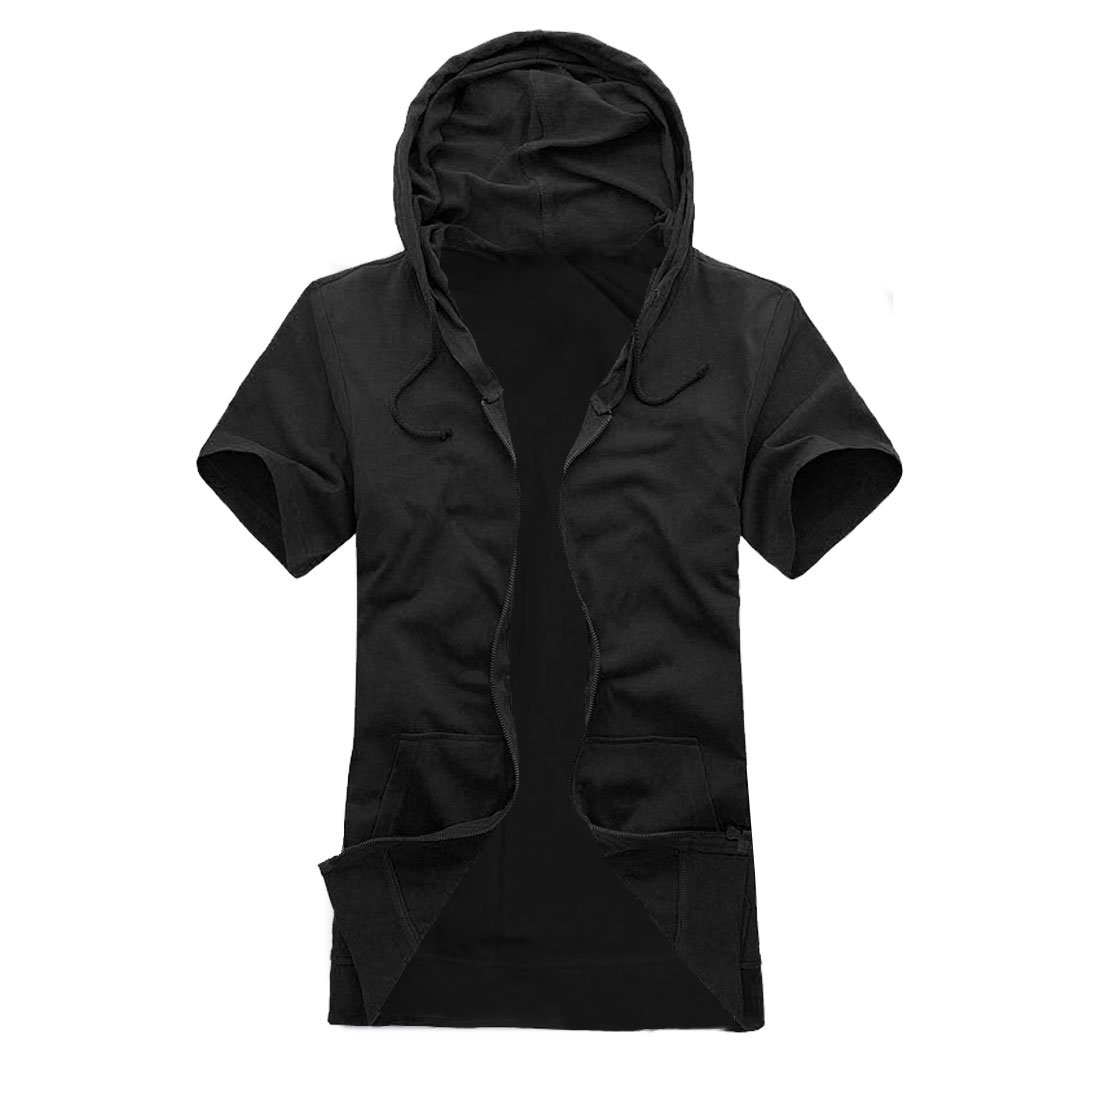 Mens Easy Matching With Pockets Casual Fashional Black Hoodie M